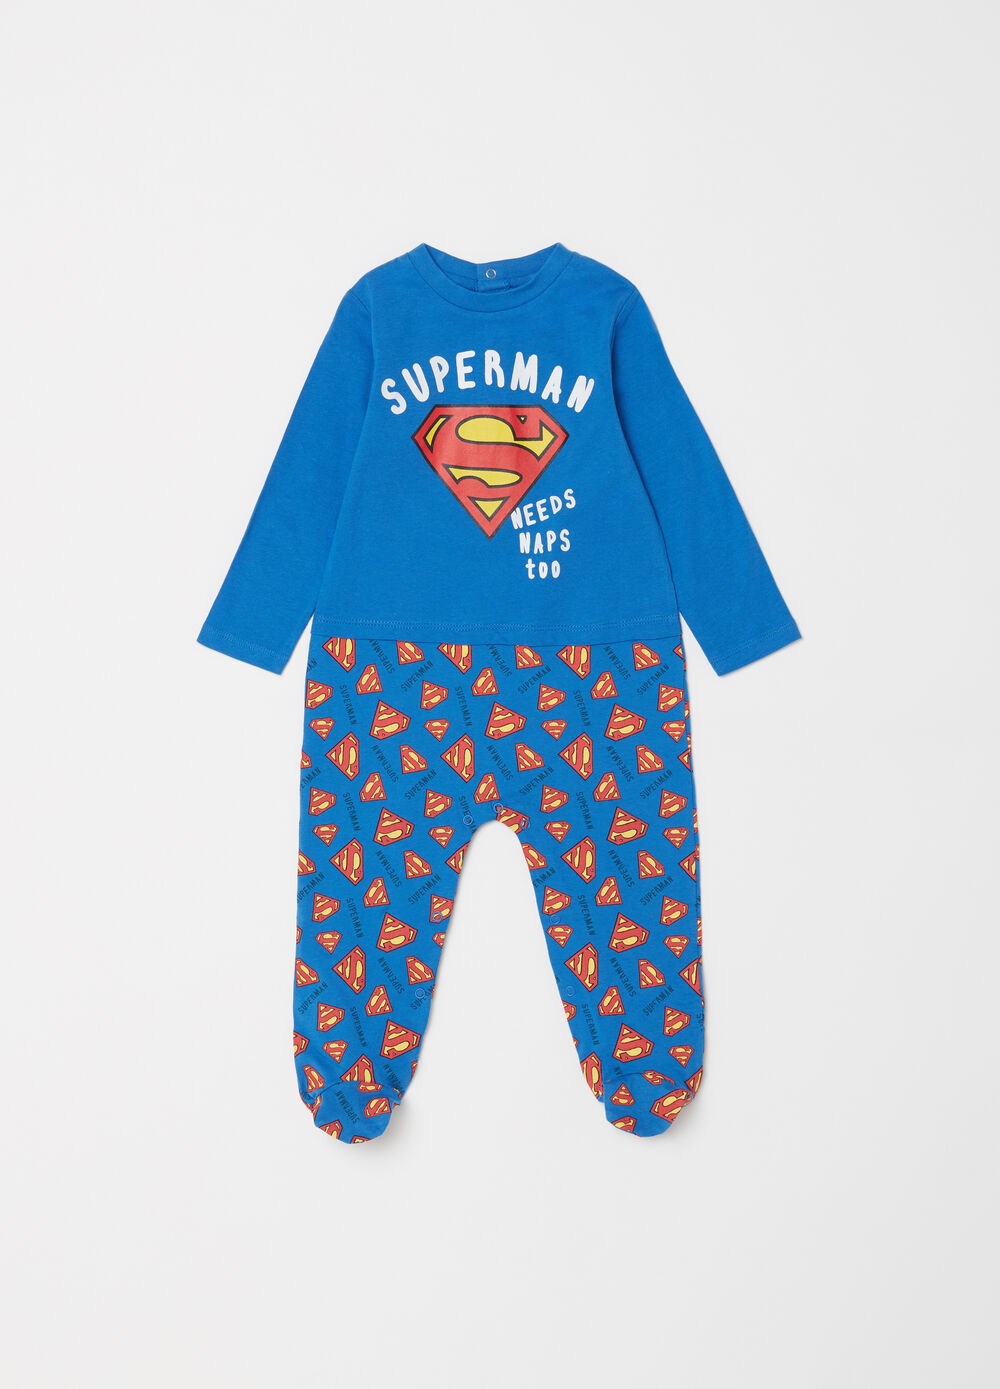 Pelele con pies estampado Superman